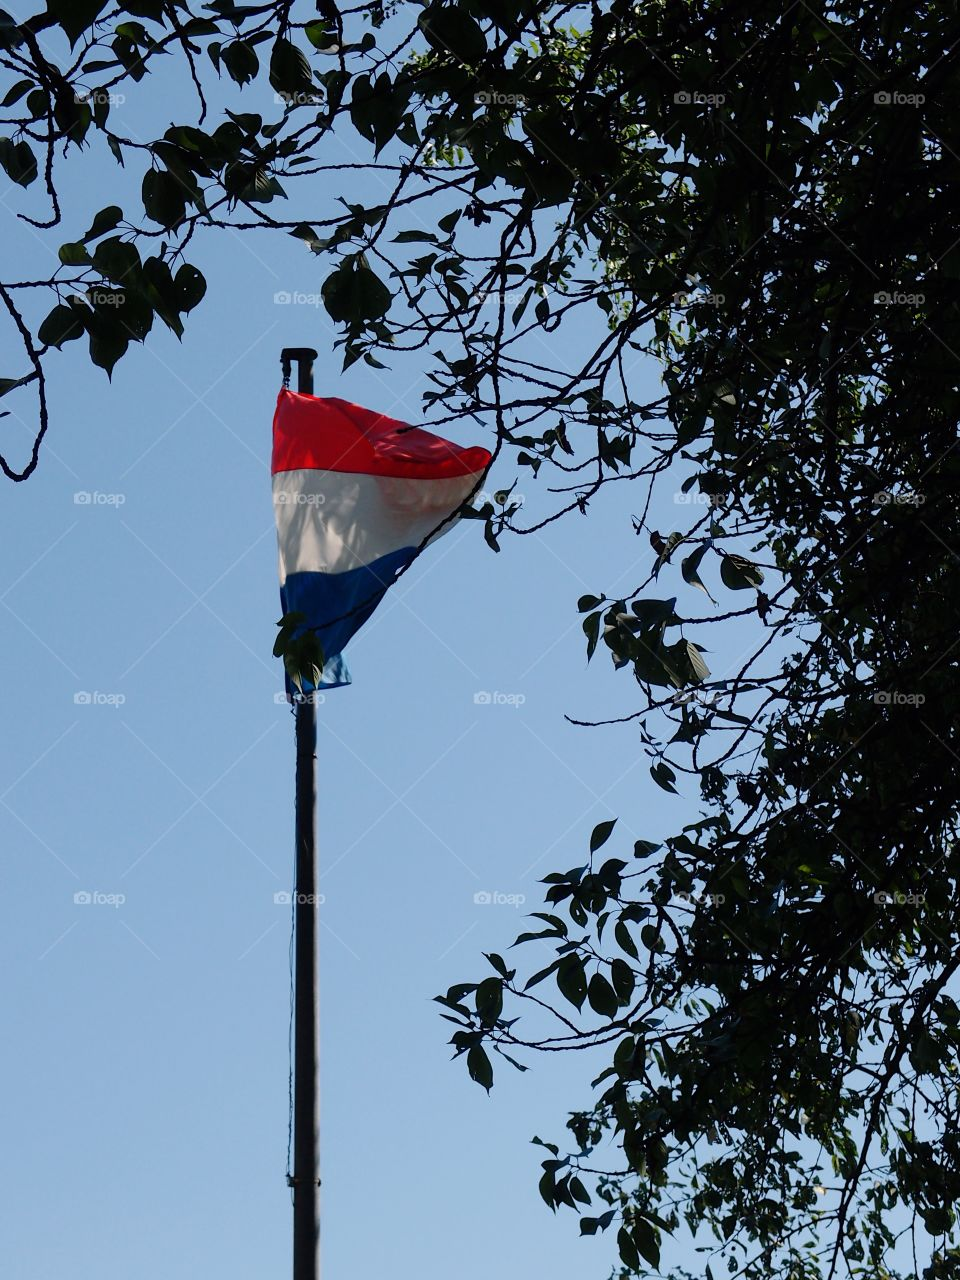 The Luxembourg flag moving with a nice summer breeze against a clear blue sky and framed by tree branches.